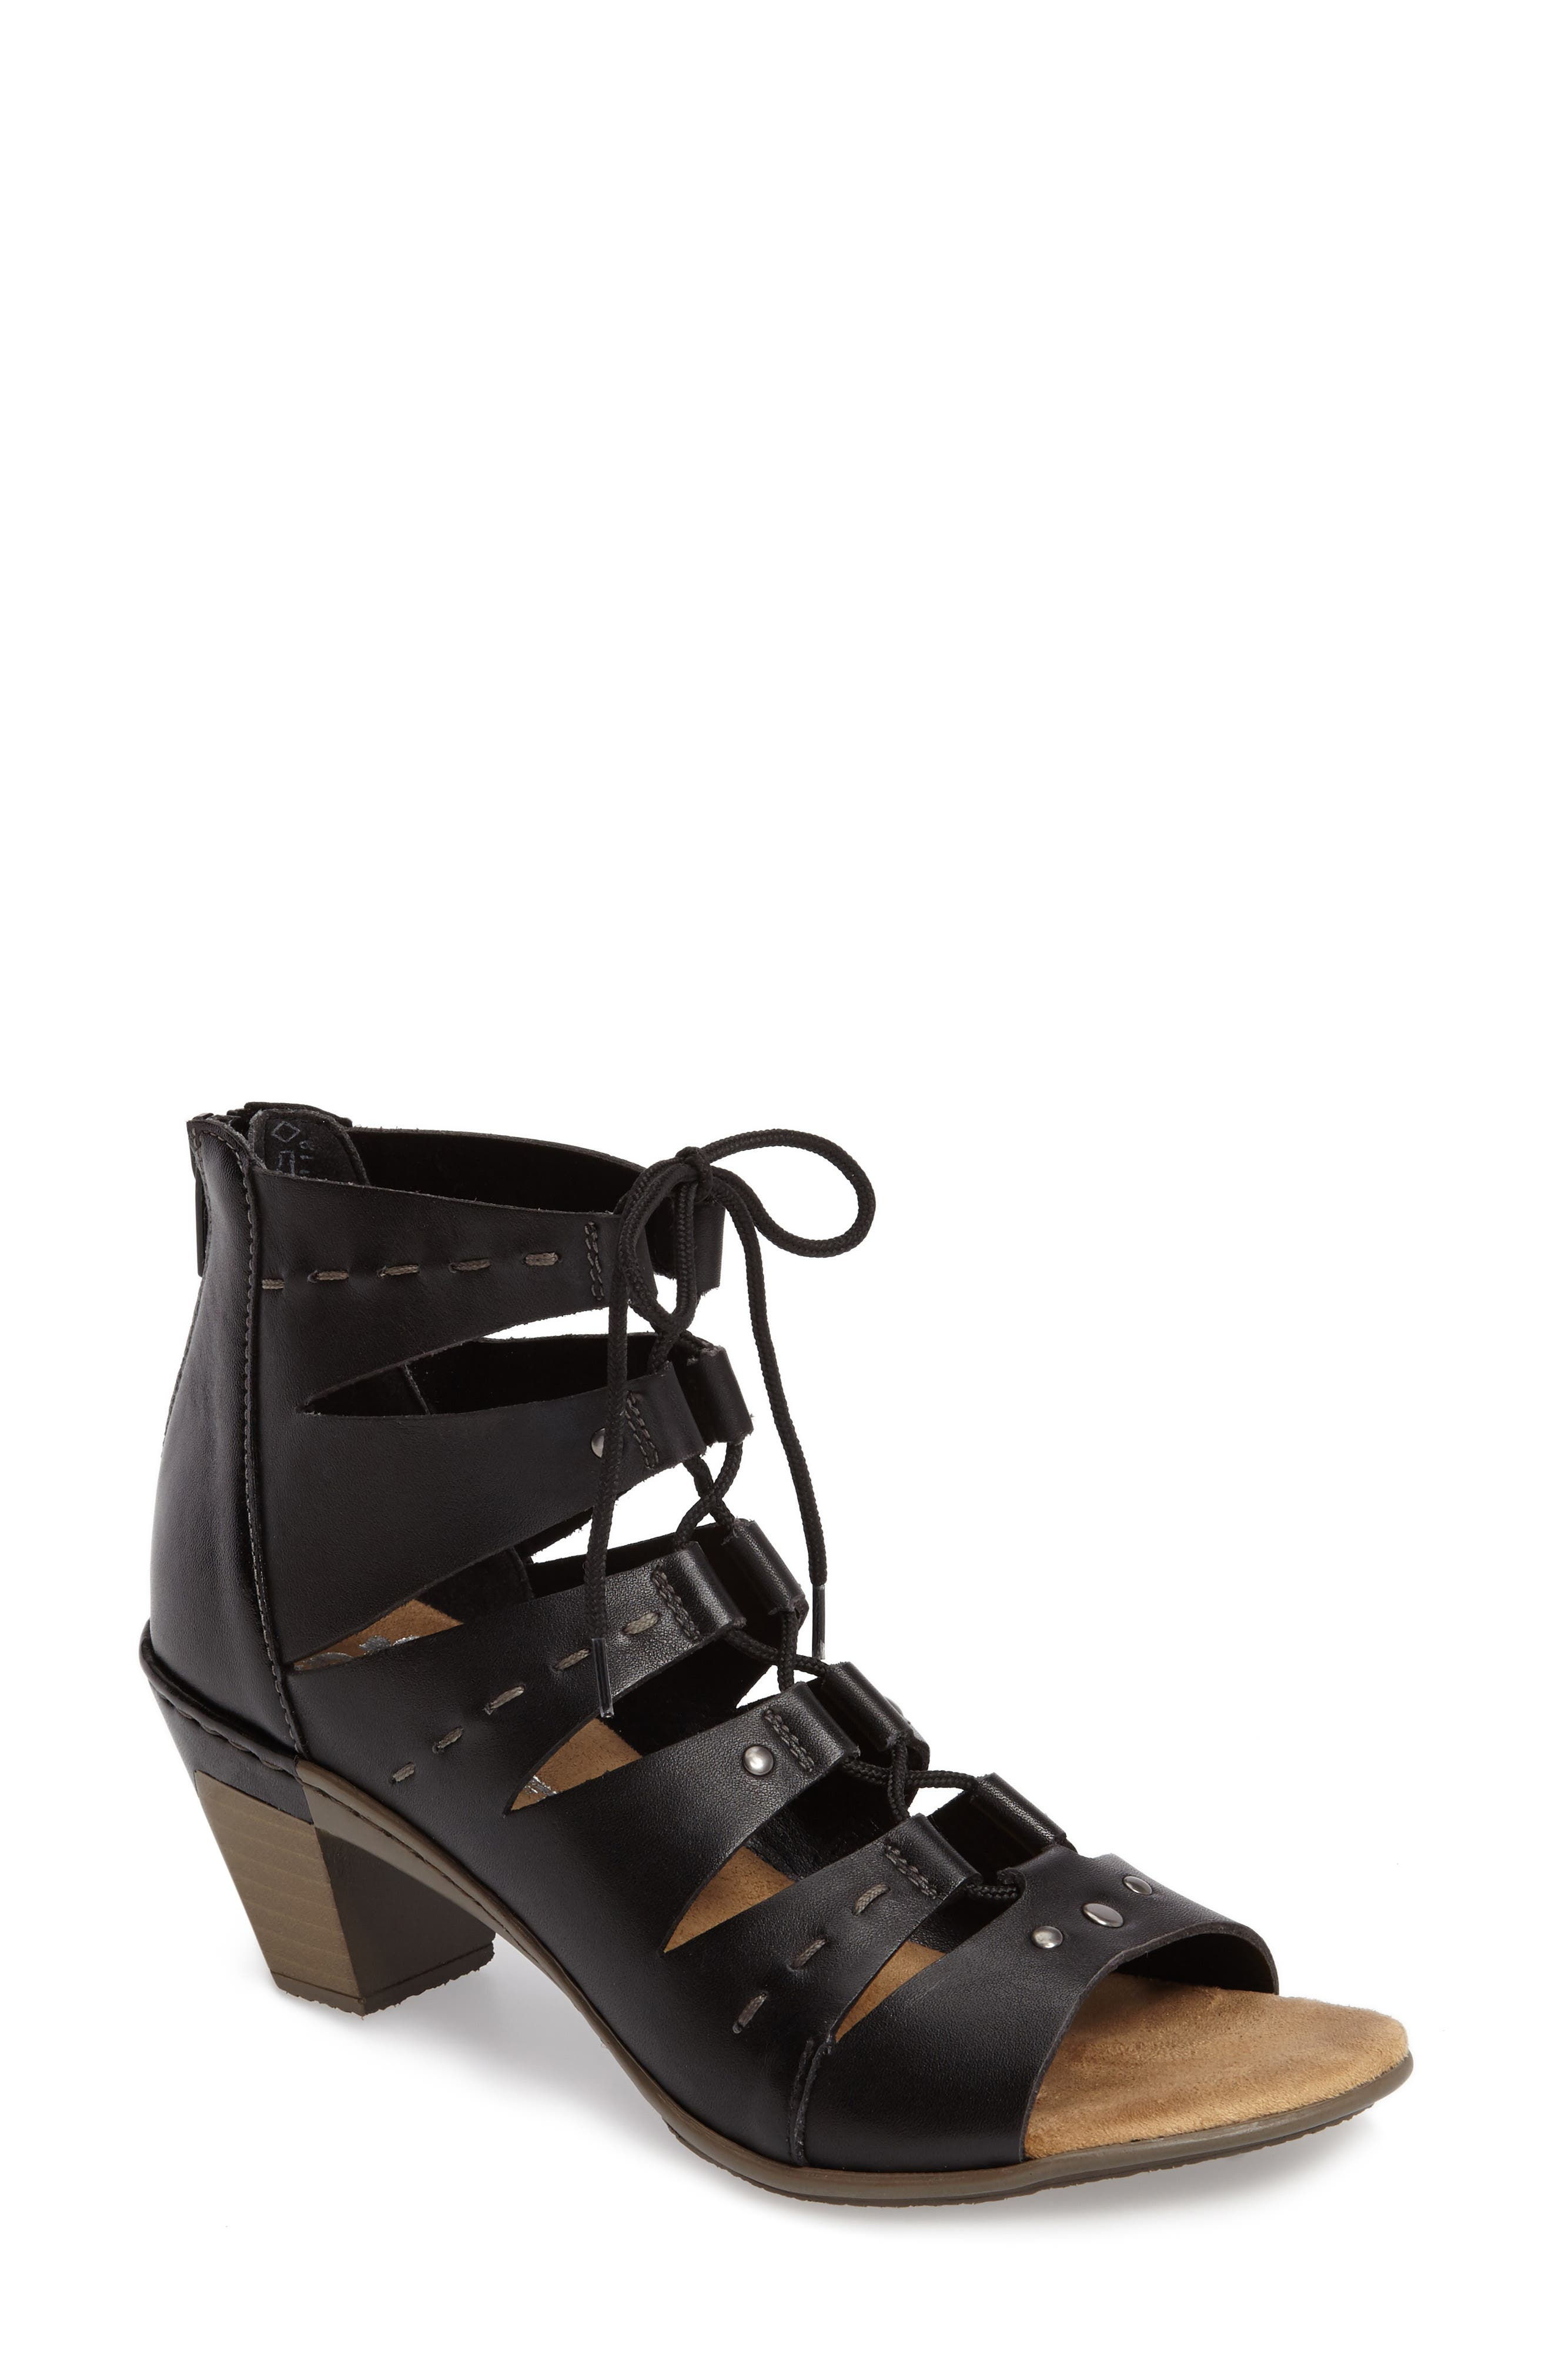 Aileen 99 Ghillie Cage Sandal,                         Main,                         color, 001